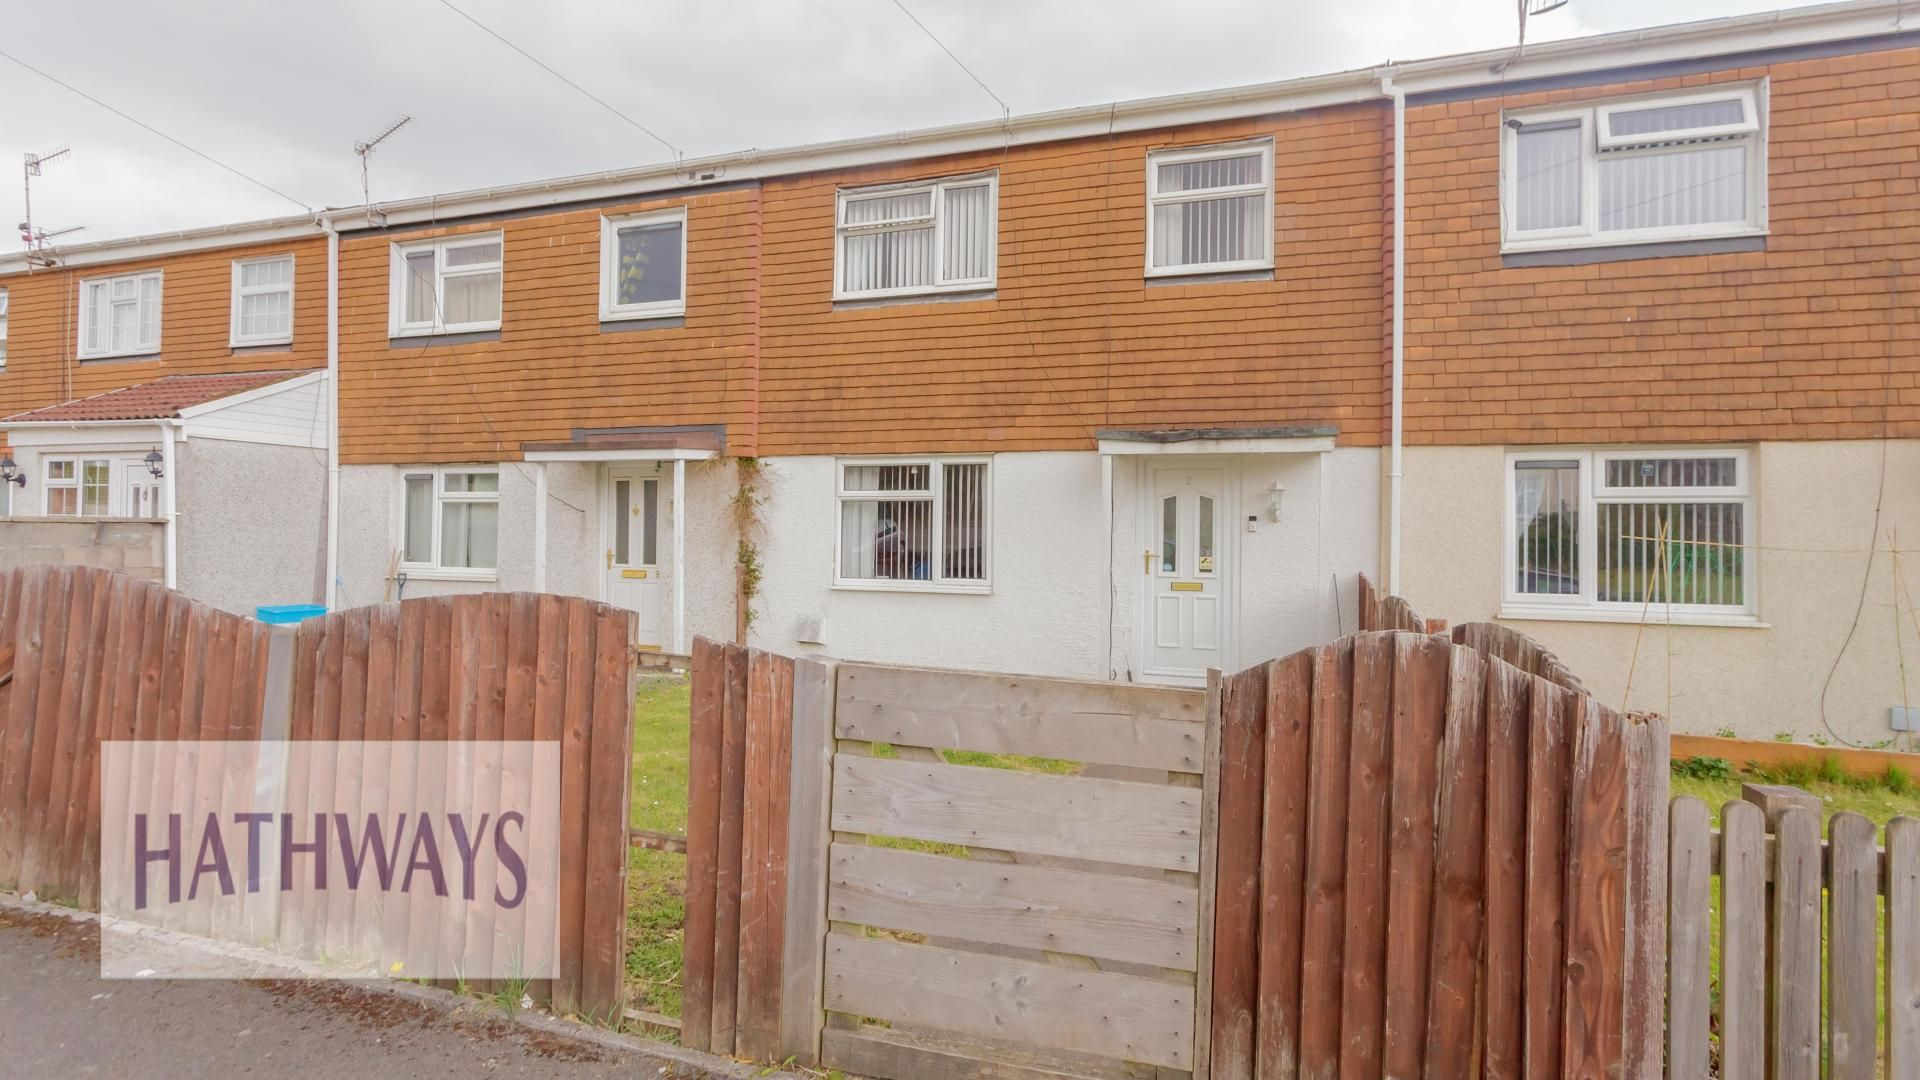 3 bed house for sale in Pisgah Close, NP4